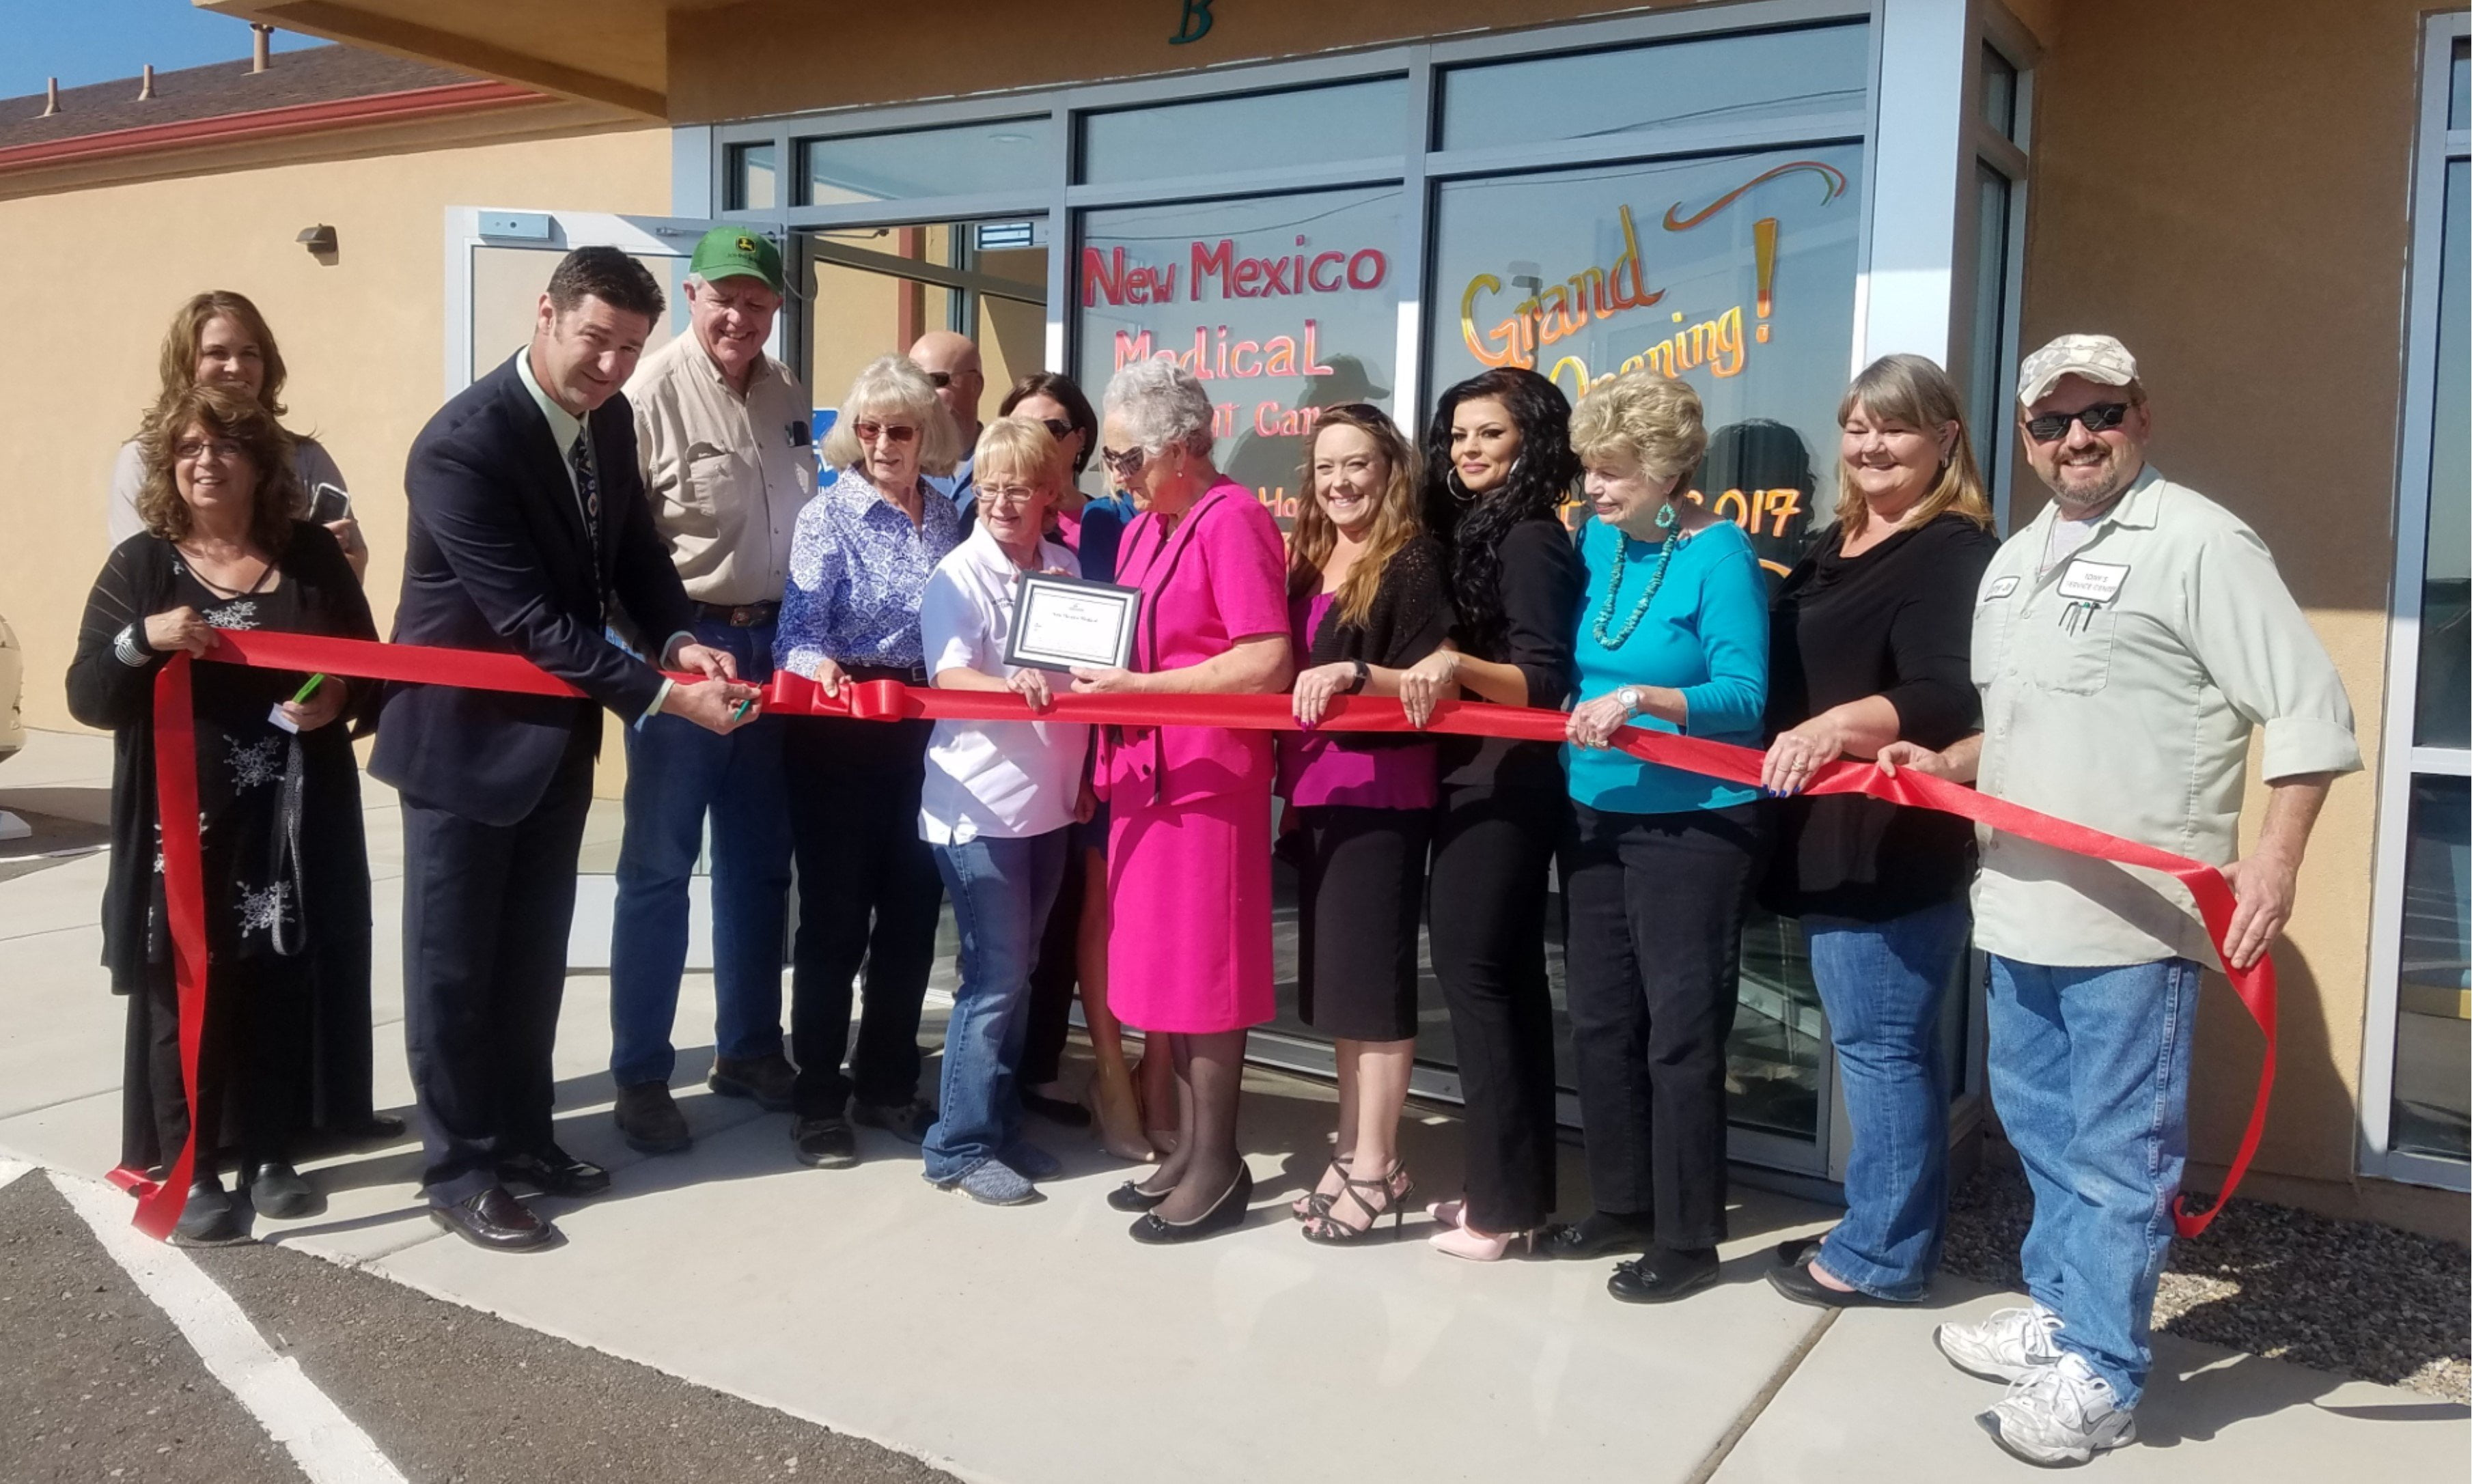 SPOTLIGHT: New Mexico Medical Urgent Care - Edgewood Chamber